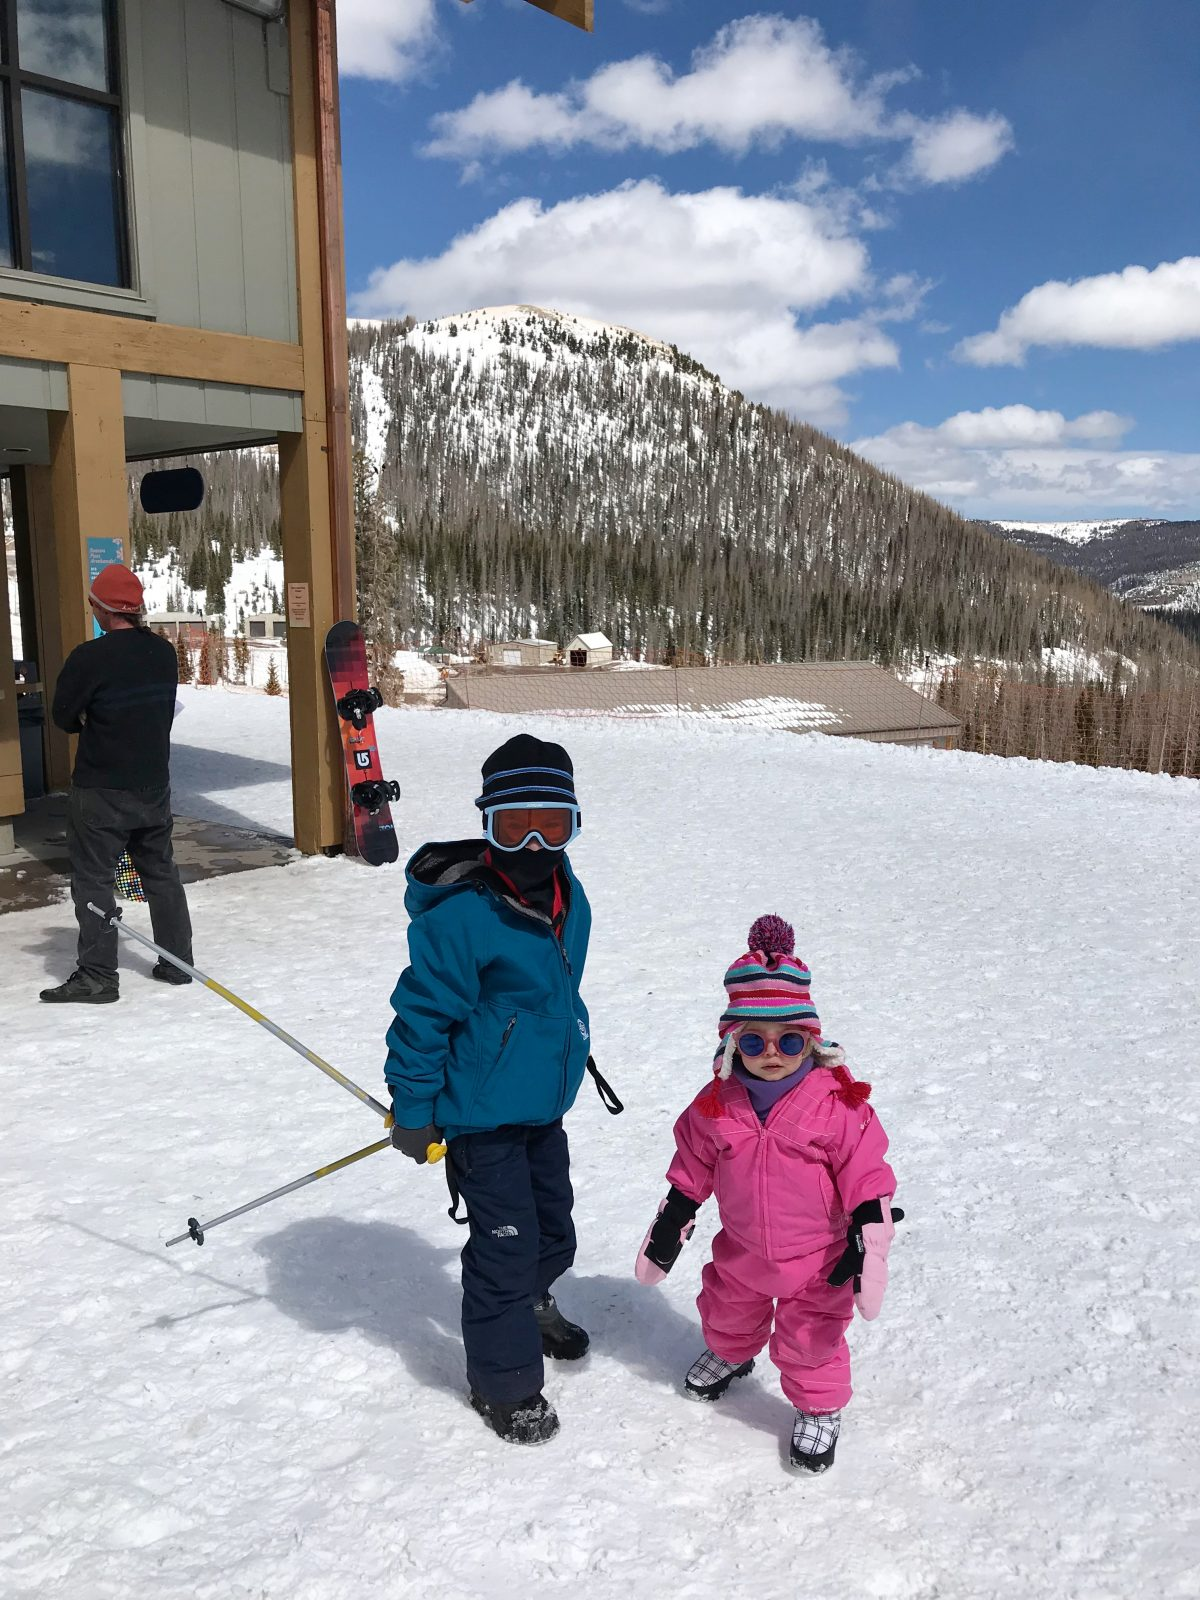 Family ski trip with a toddler - Pagosa Springs, Colorado.2 (2)